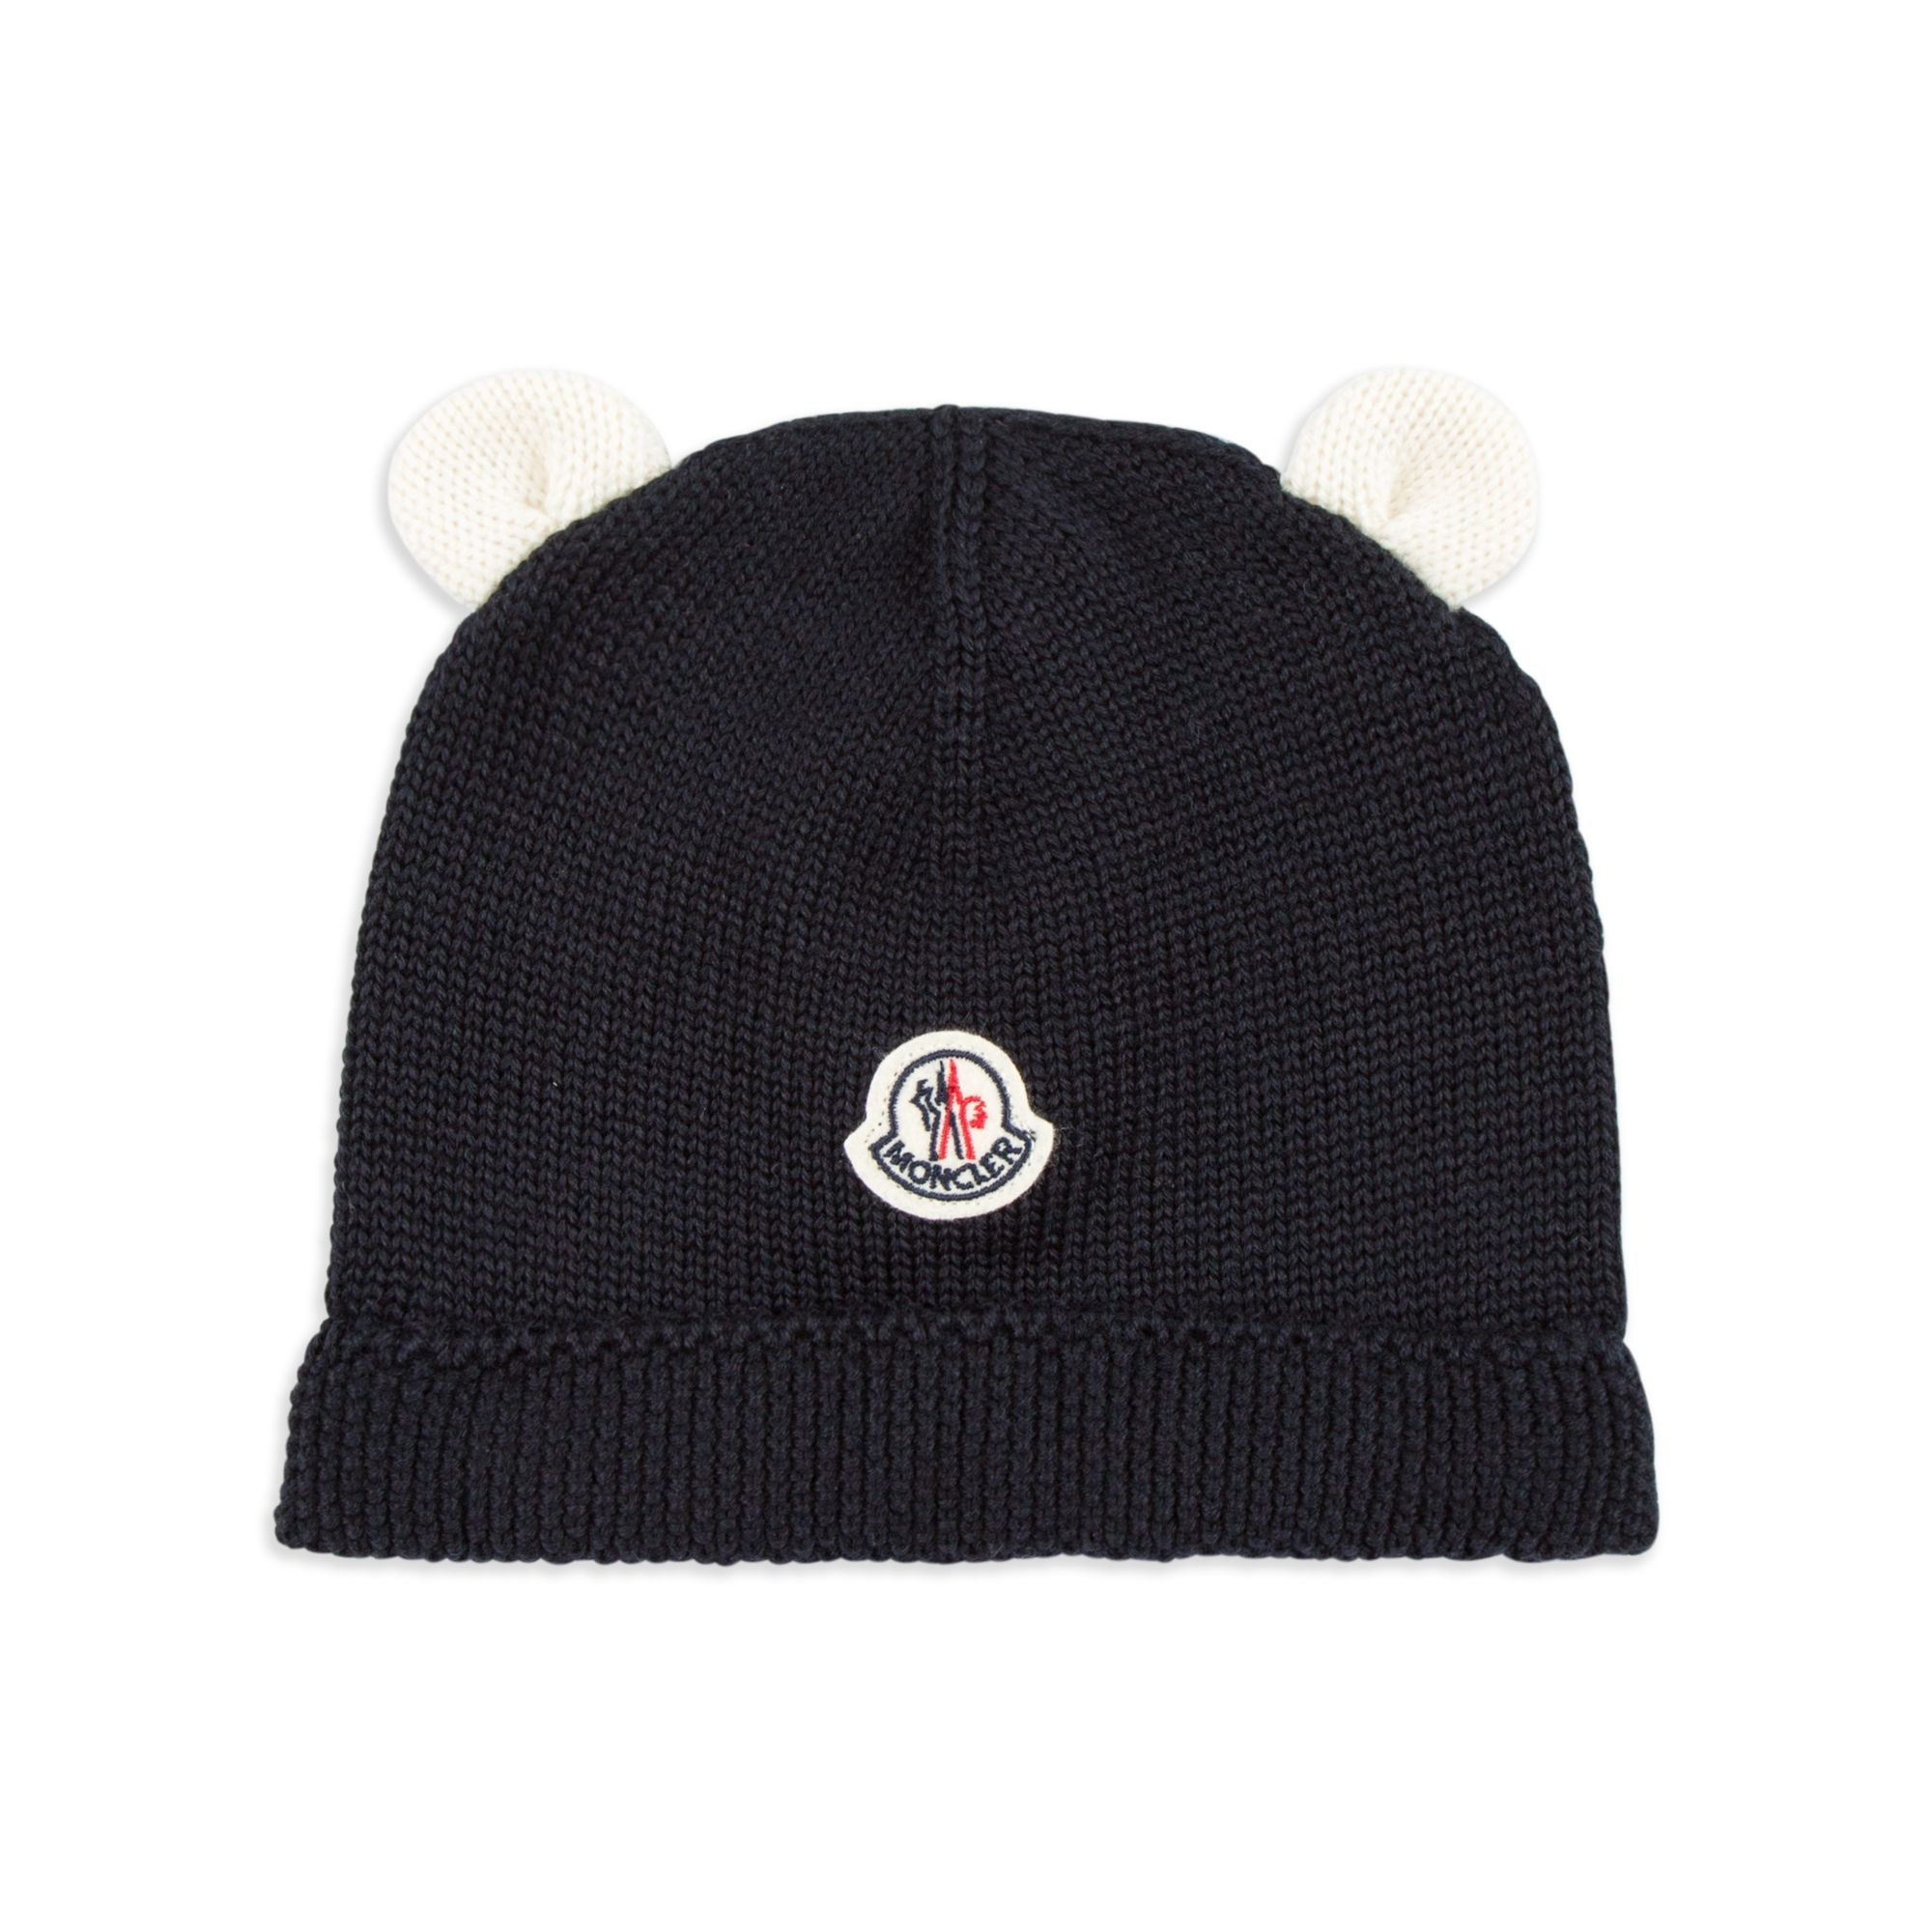 fe987e161132dd base MONCLER Baby Boys Ear Beanie Hat - Navy Baby boys beanie hat • Soft  knitted wool • Turn up brim • Signature logo motif • Attached little ears •  Made in ...